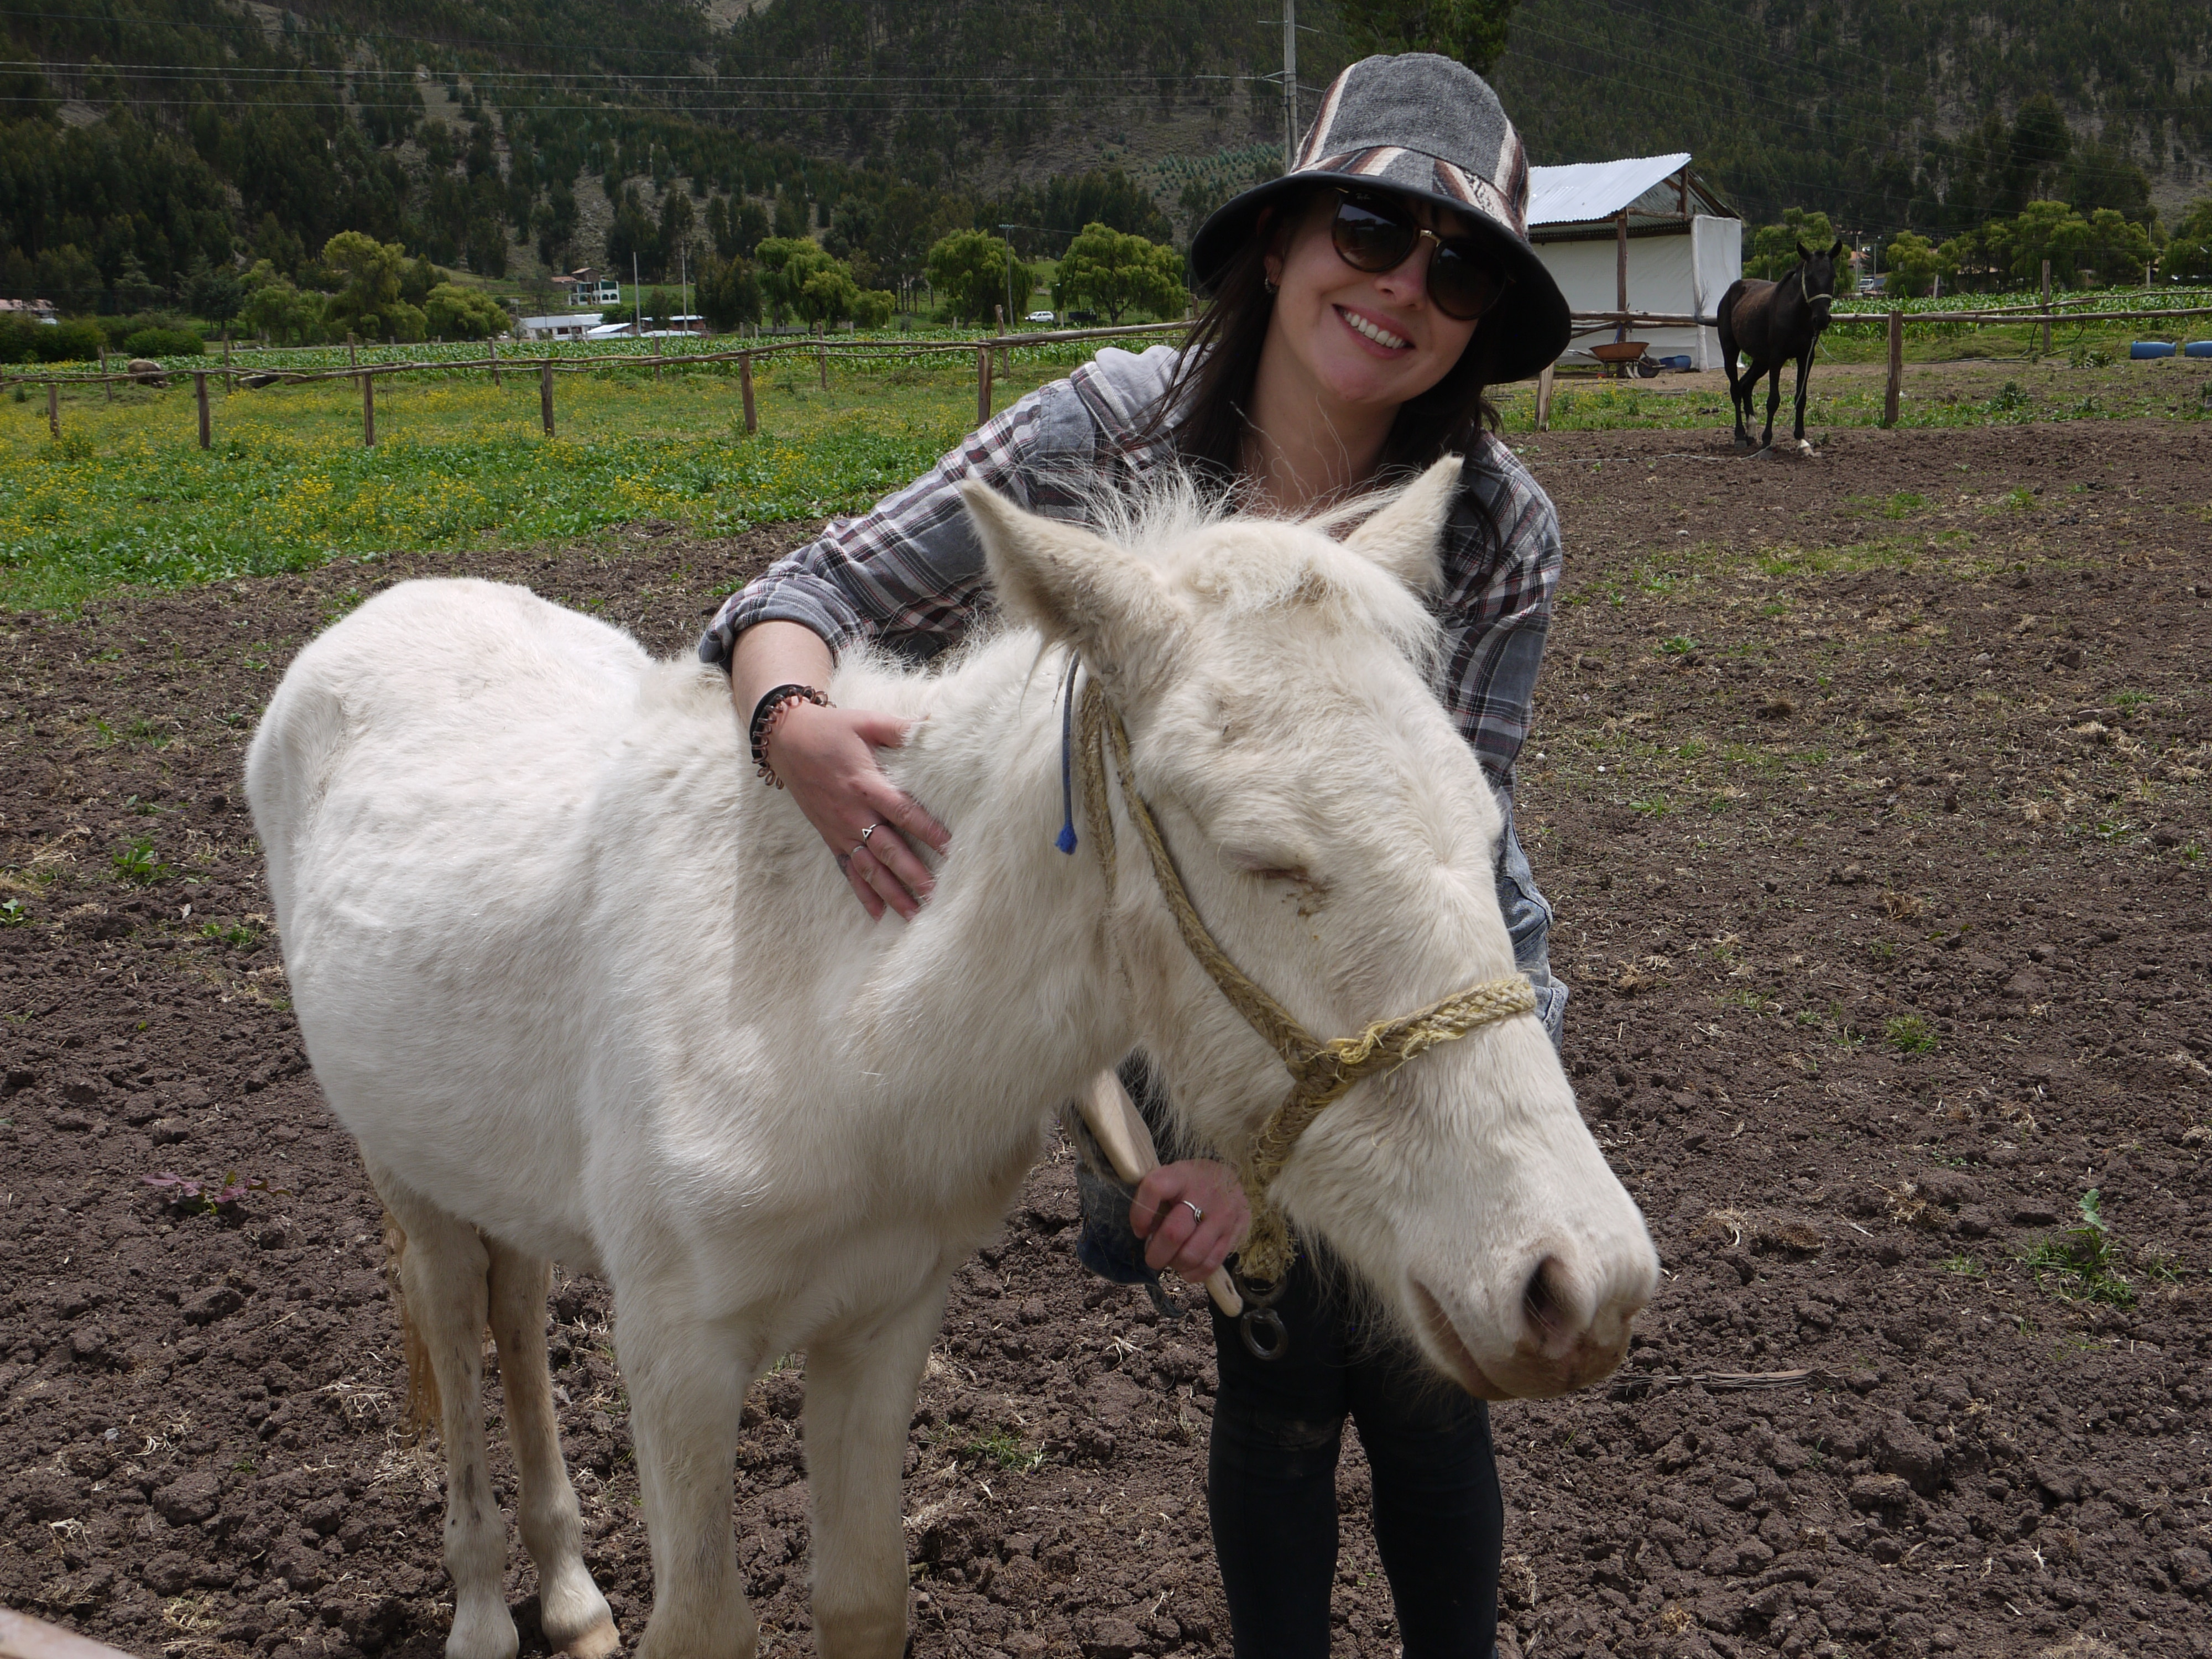 Volunteer with Horse at Horse Sanctuary